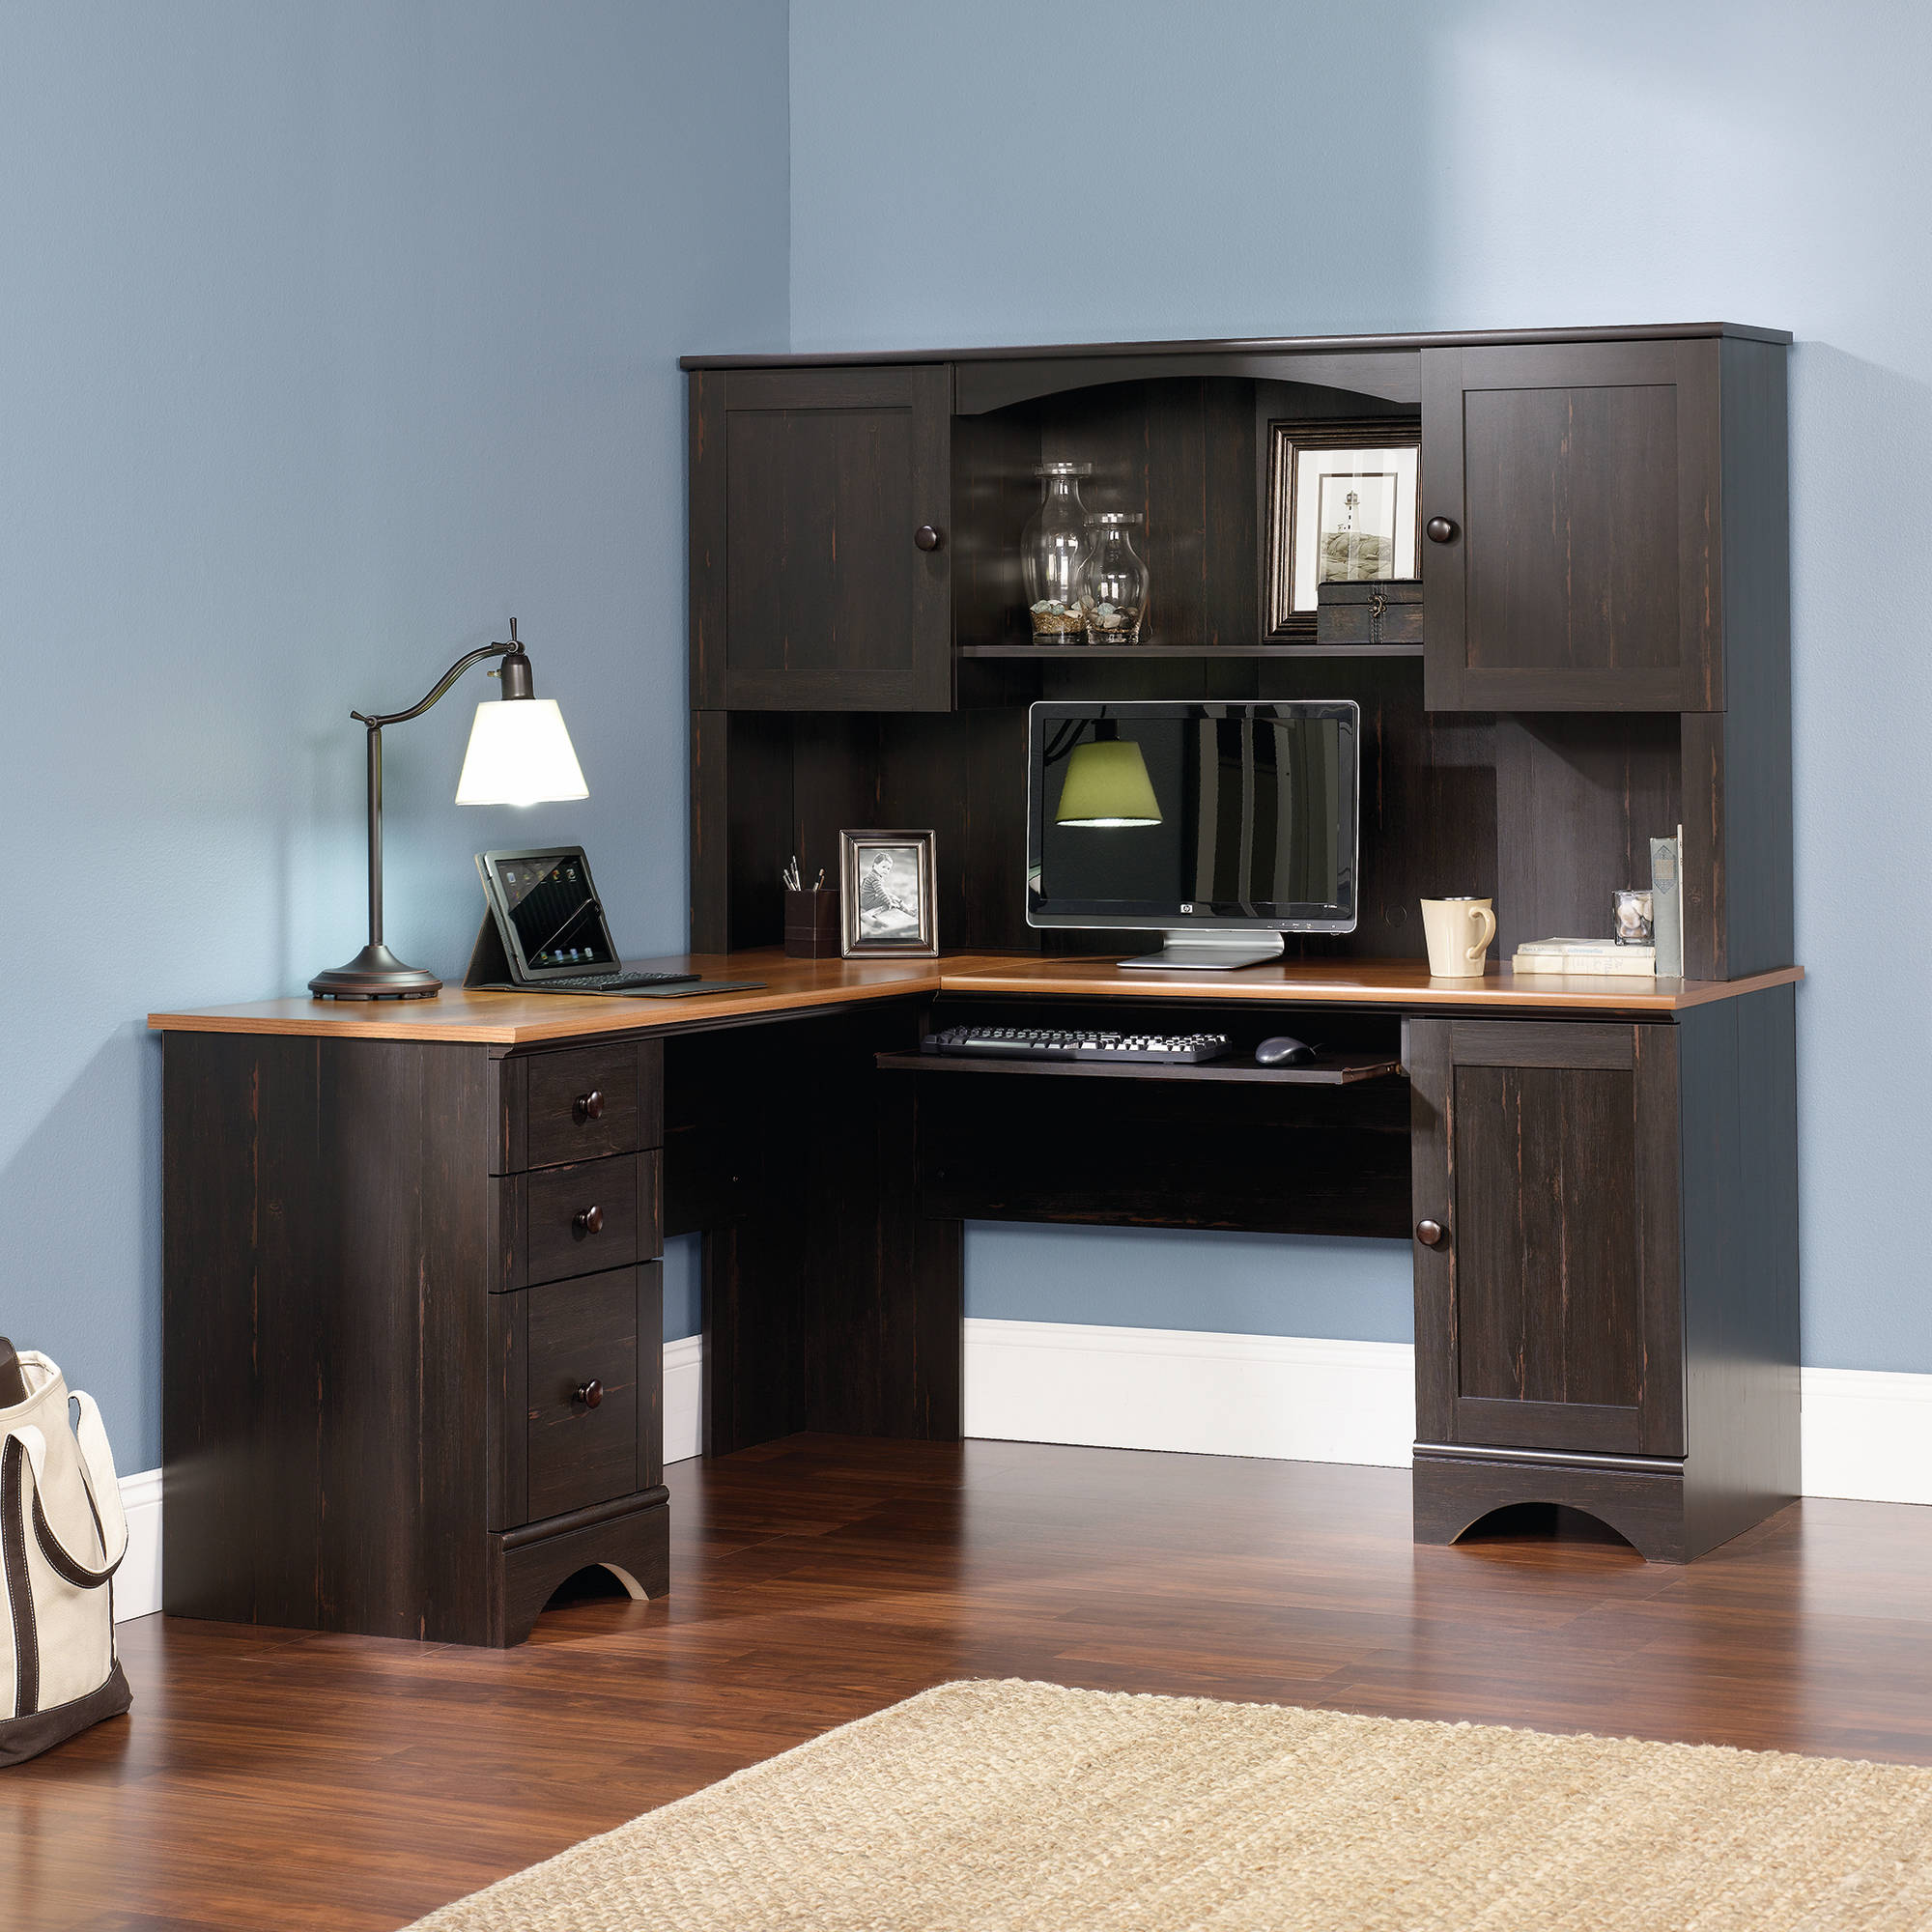 furniture of surprising the desk in decor choice home sauder elegant corner bush image